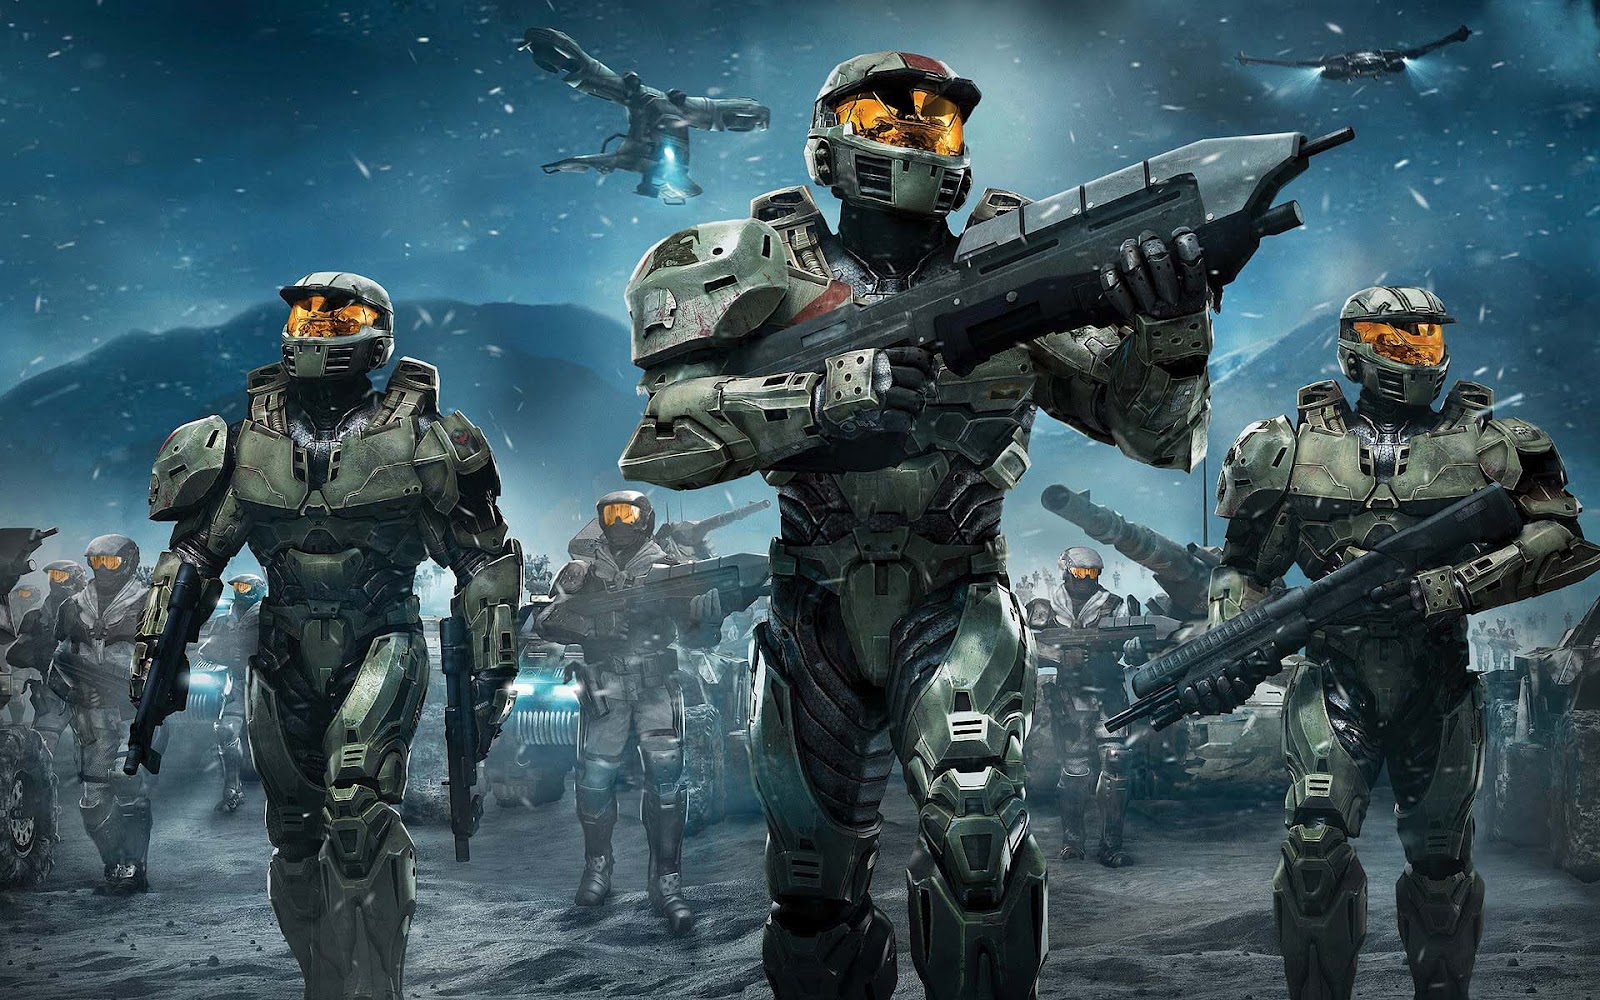 Halo Reach Elite Wallpaper 1600x1000